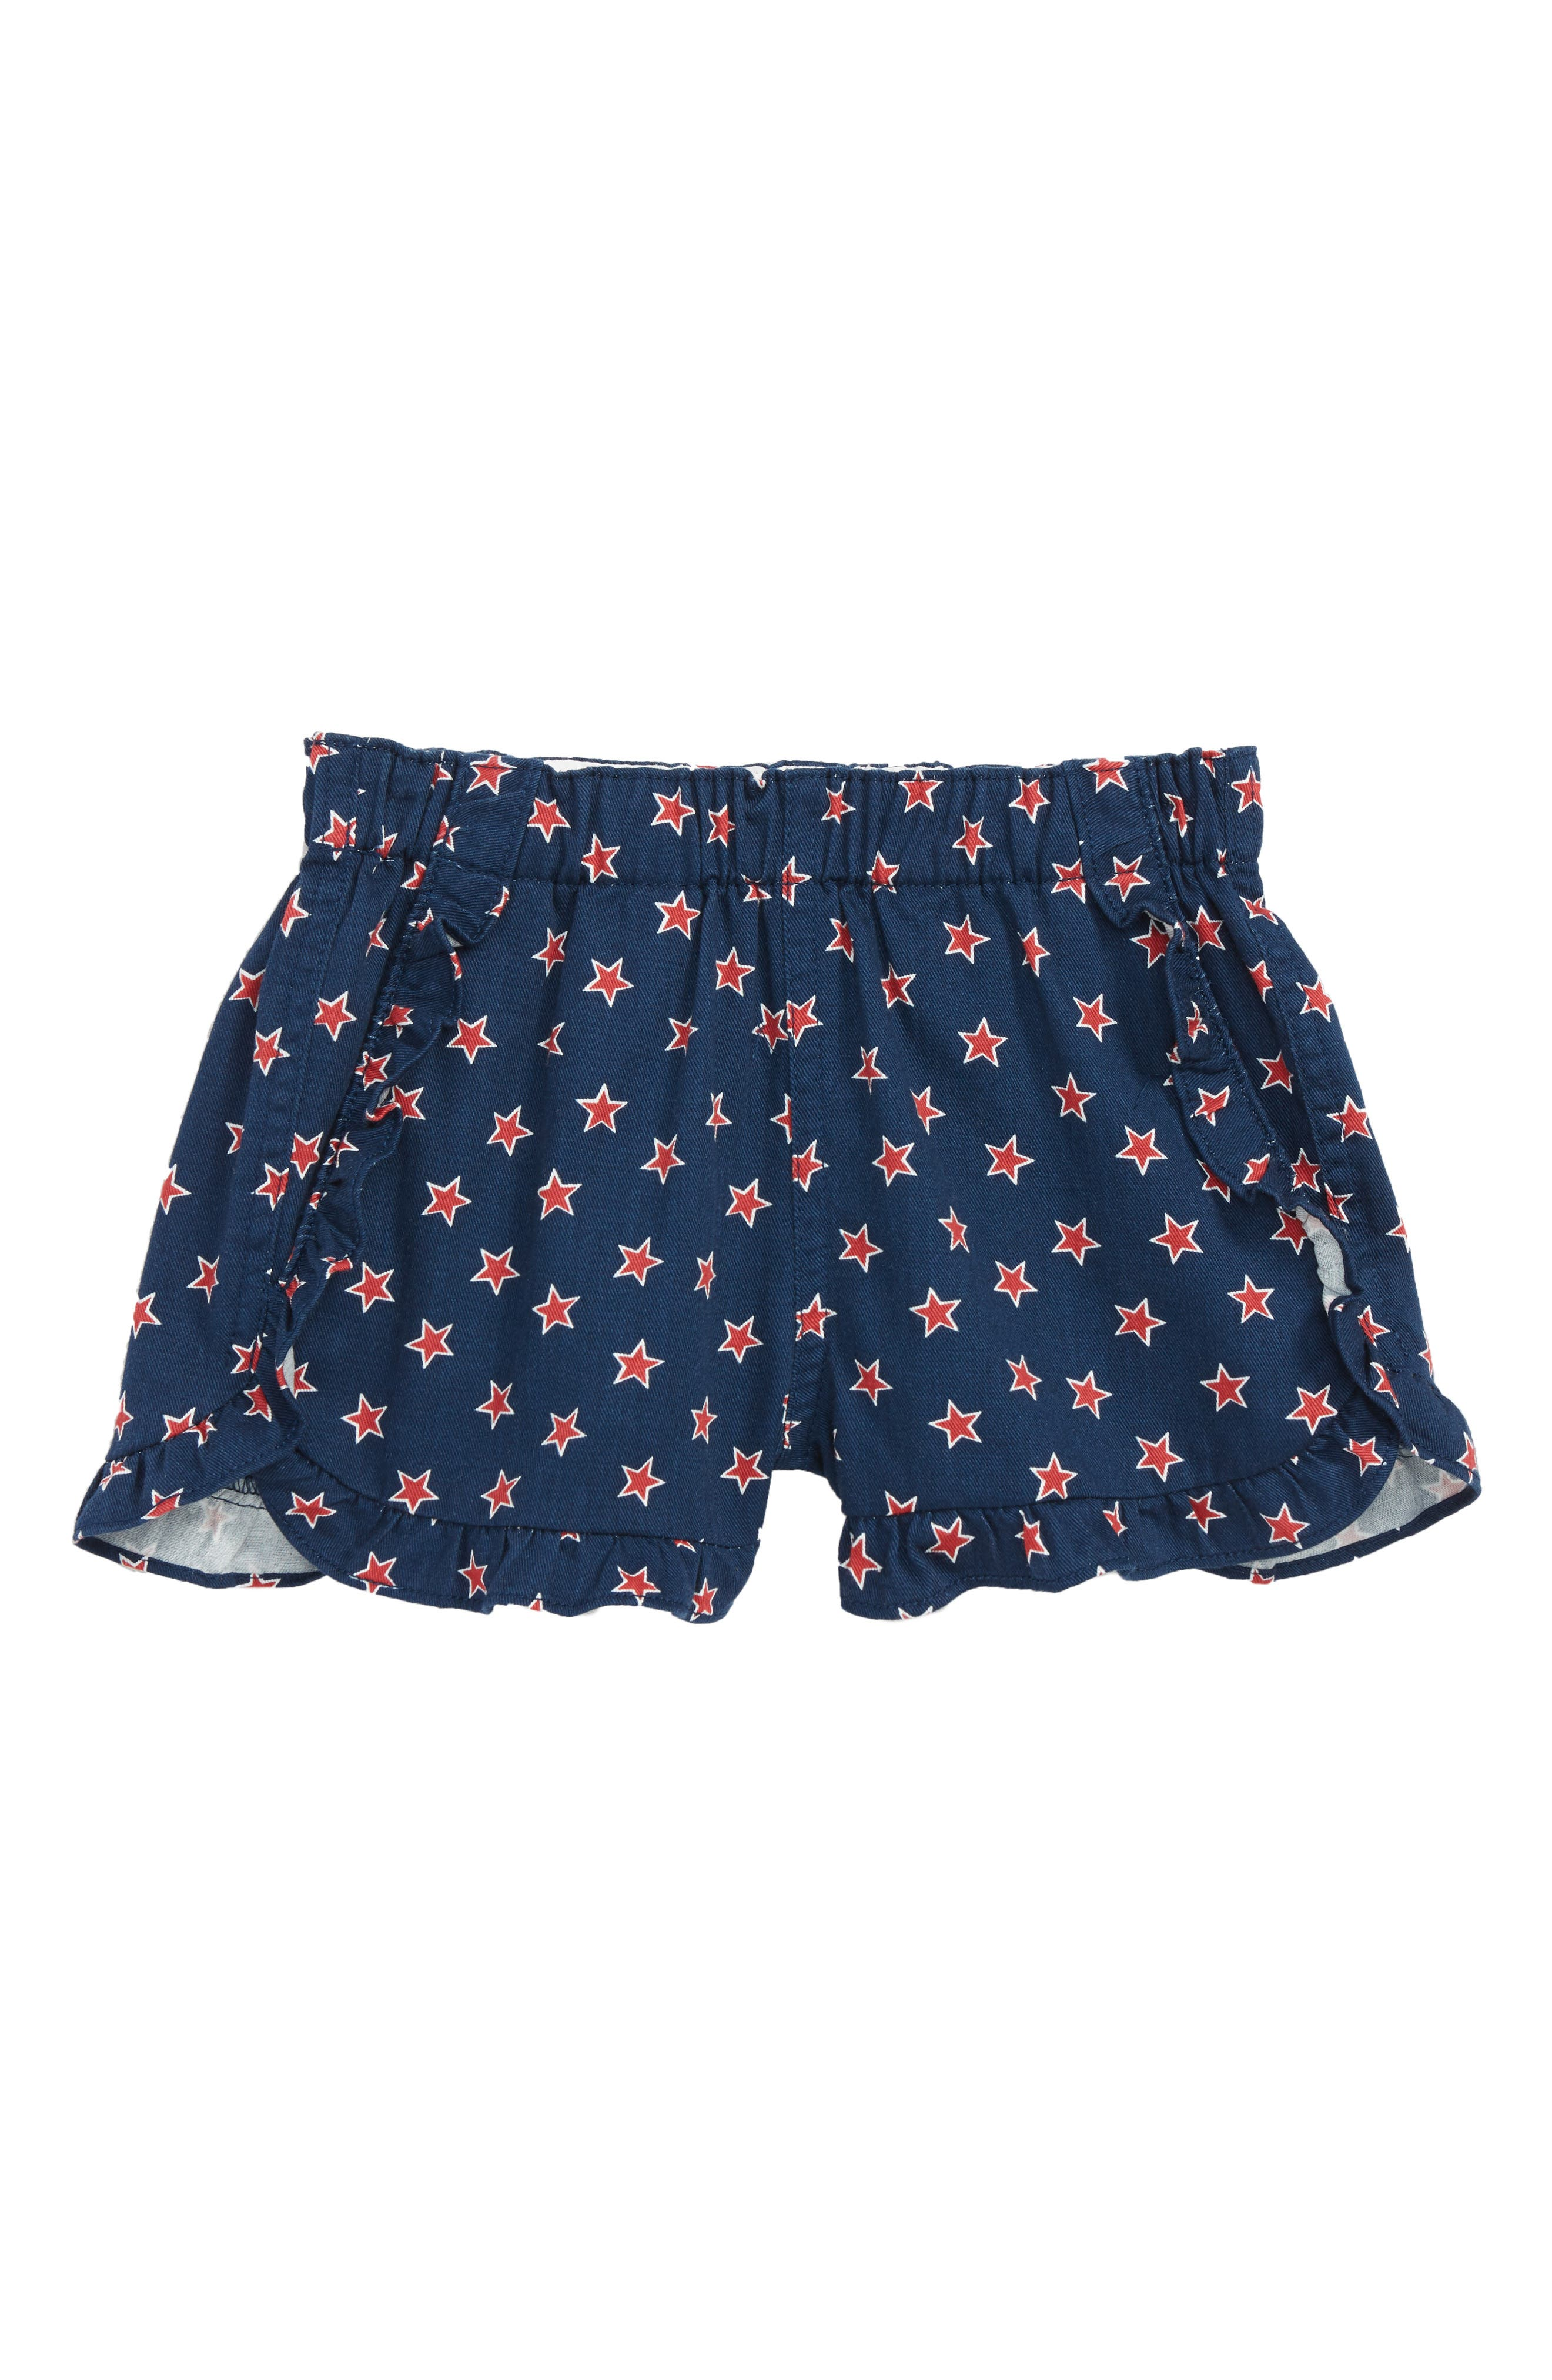 CREWCUTS BY J.CREW Star Print Ruffle Pull-On Shorts, Main, color, 400